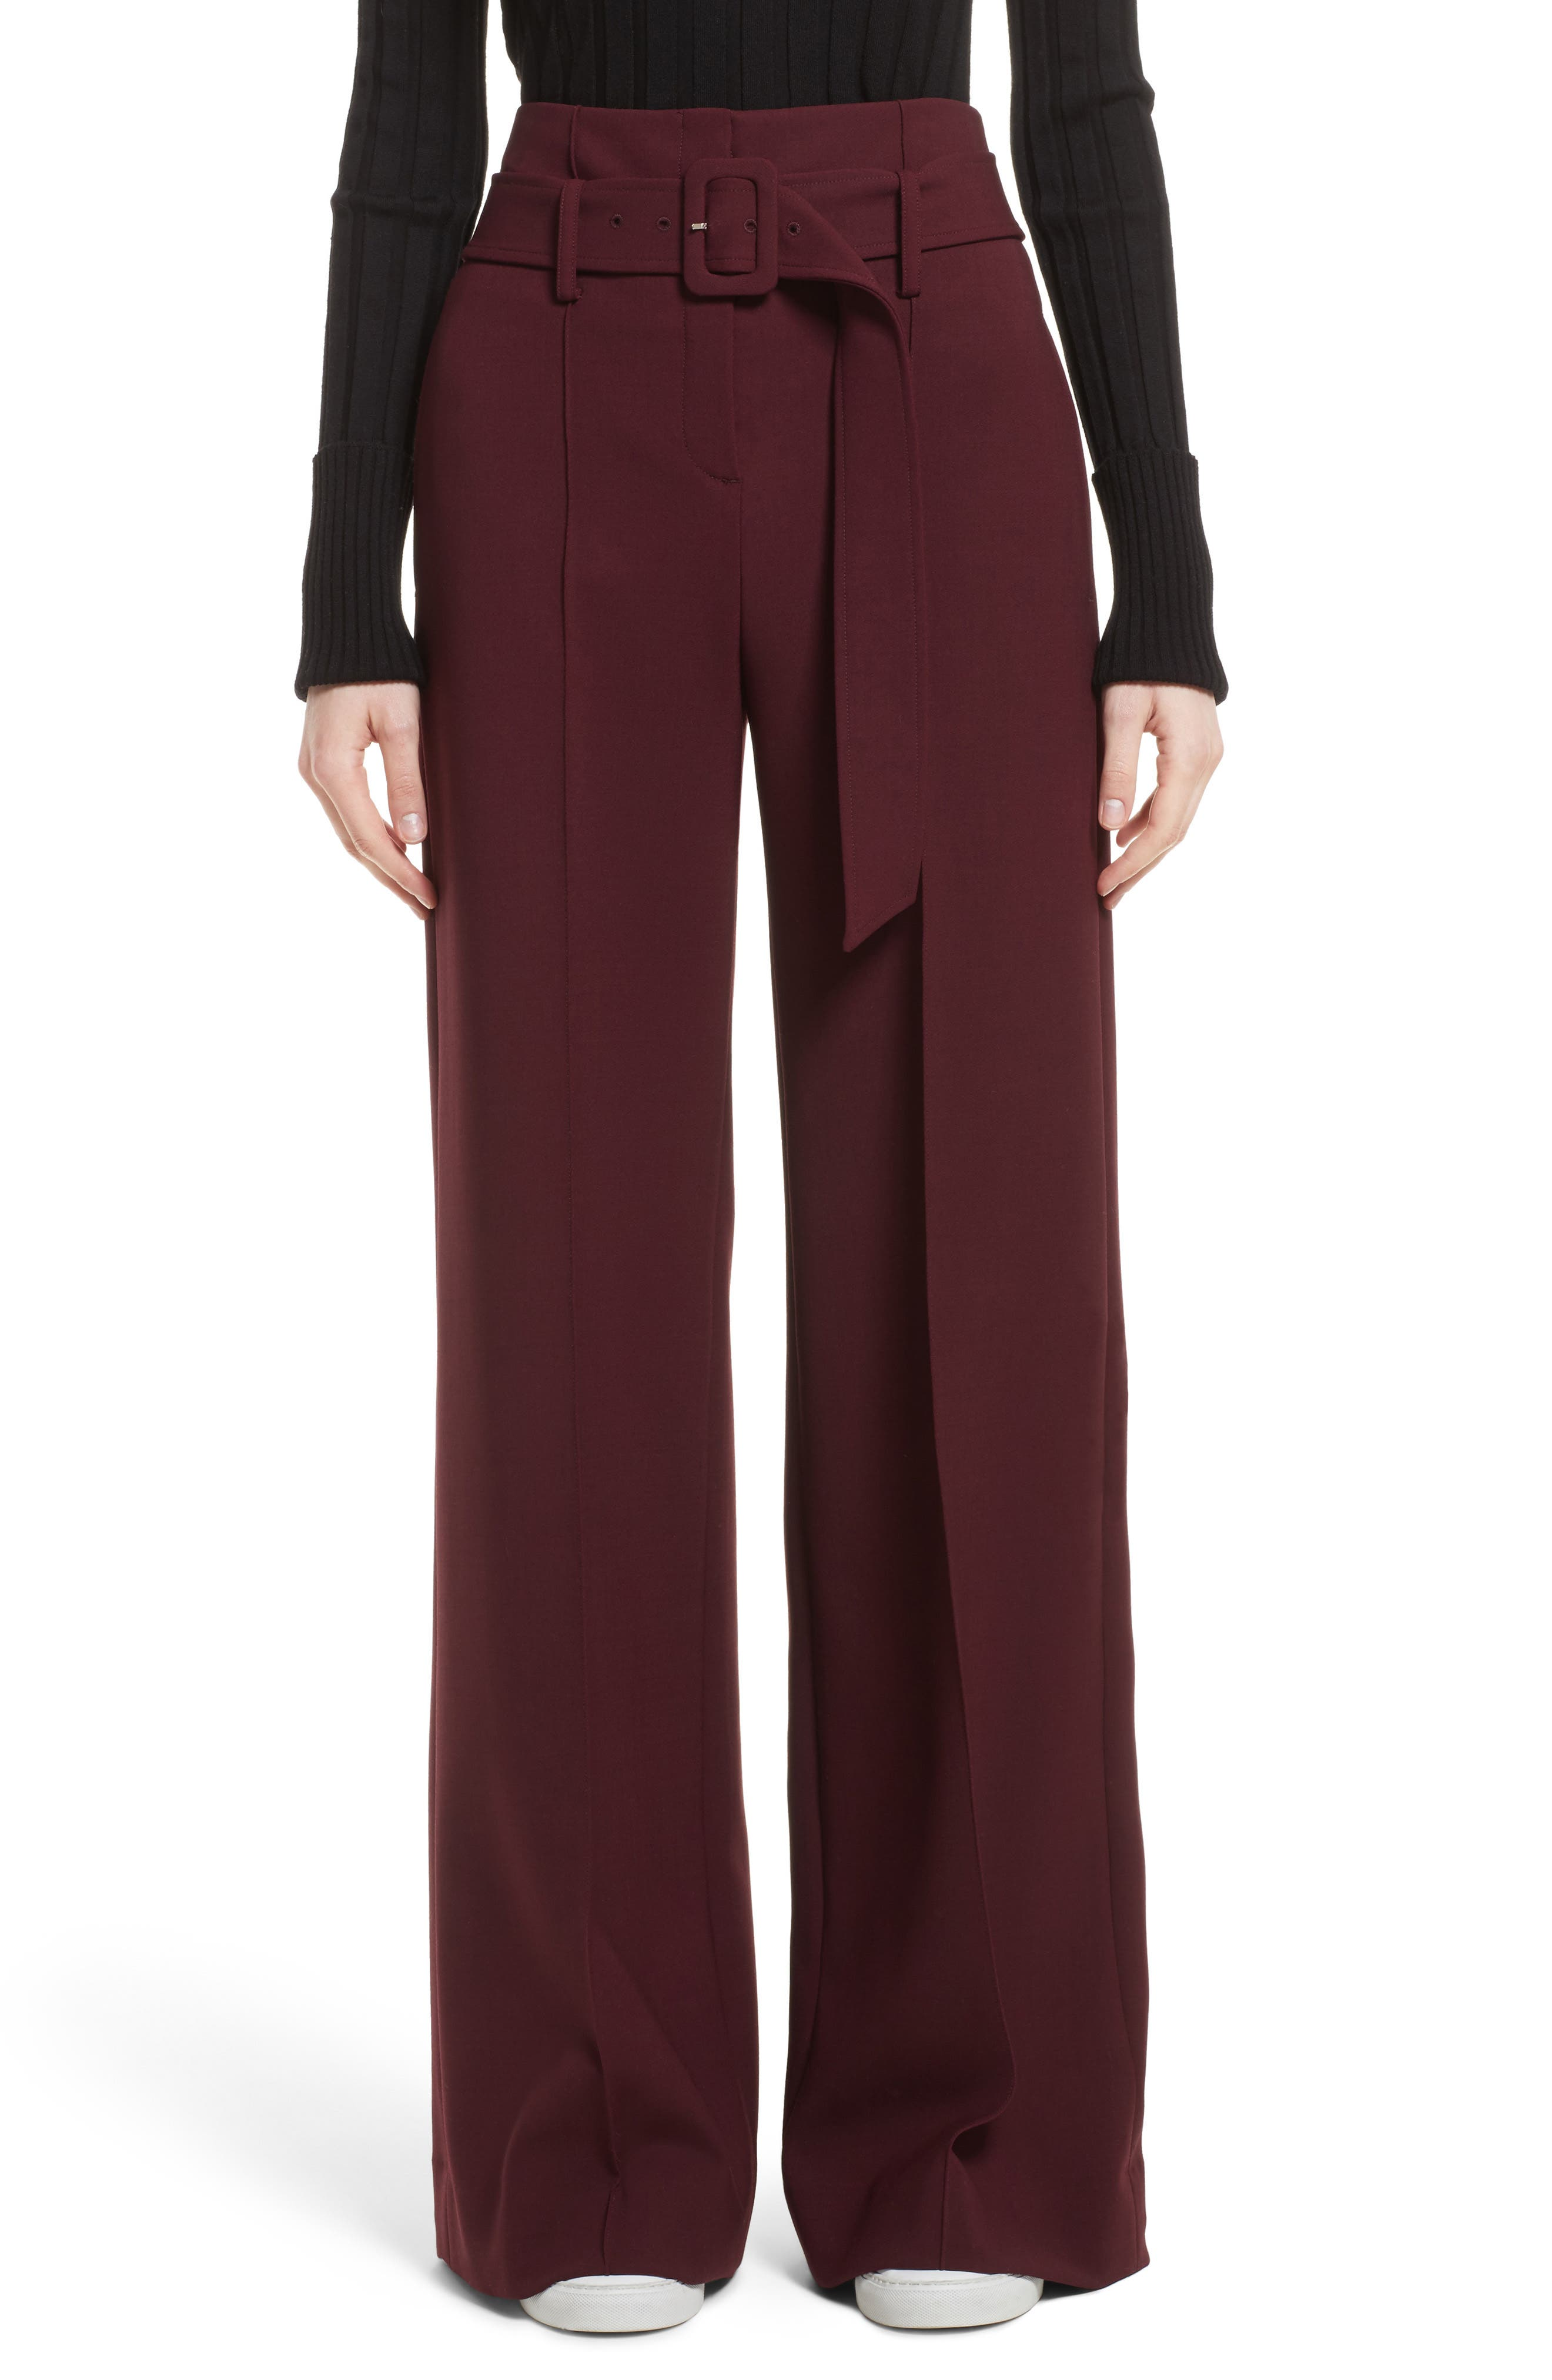 Camogie High Waist Belted Pants,                             Main thumbnail 1, color,                             Dark Currant